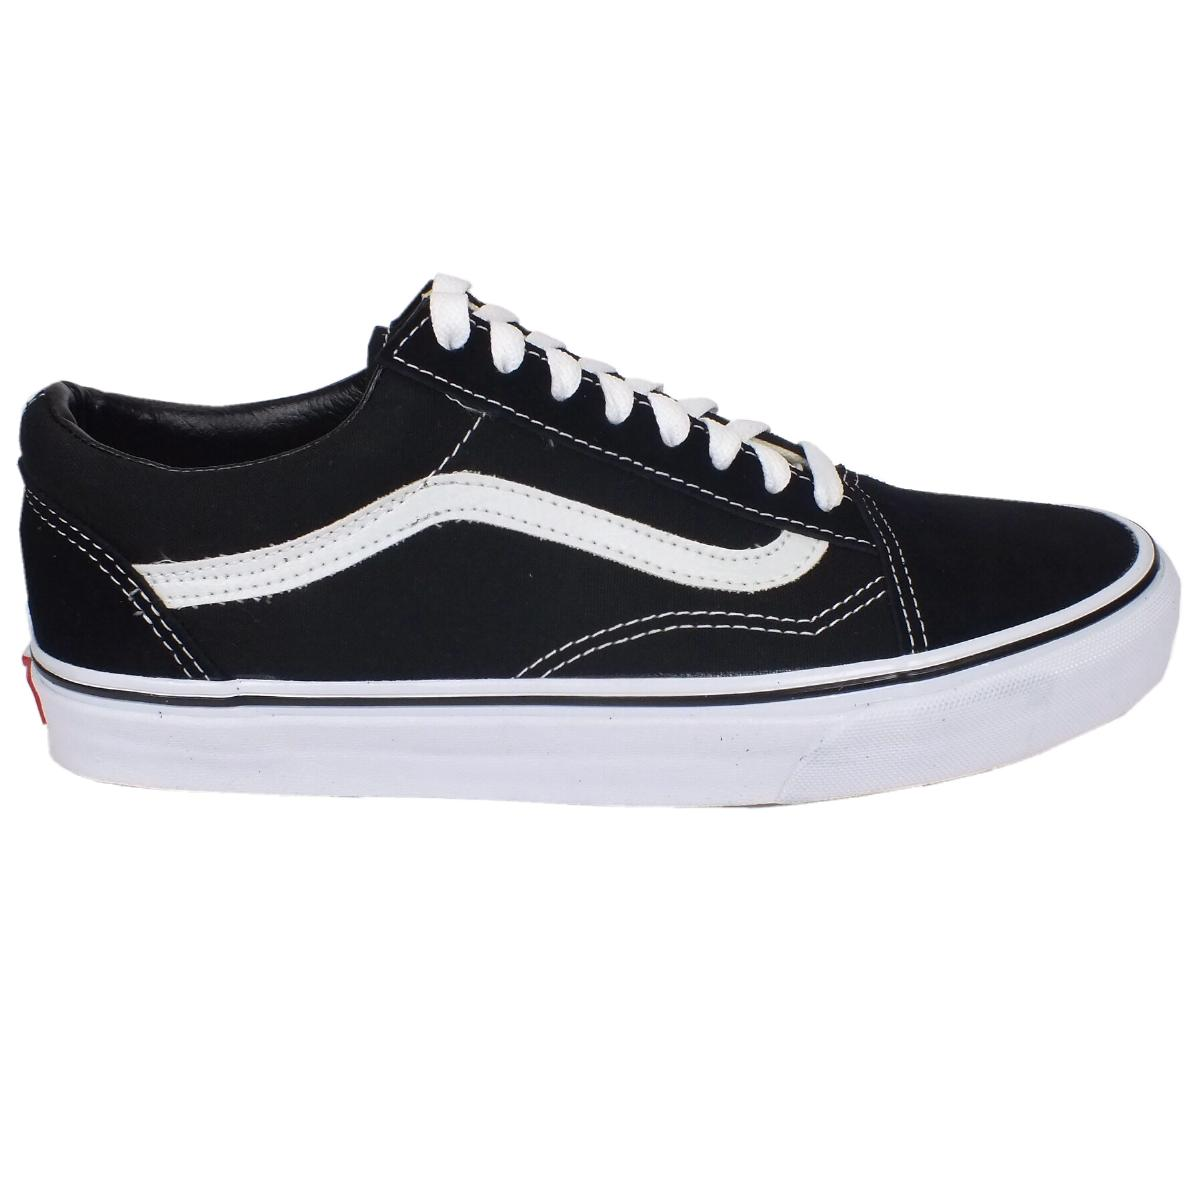 vans old skool sneaker schuhe blau schwarz wei ebay. Black Bedroom Furniture Sets. Home Design Ideas